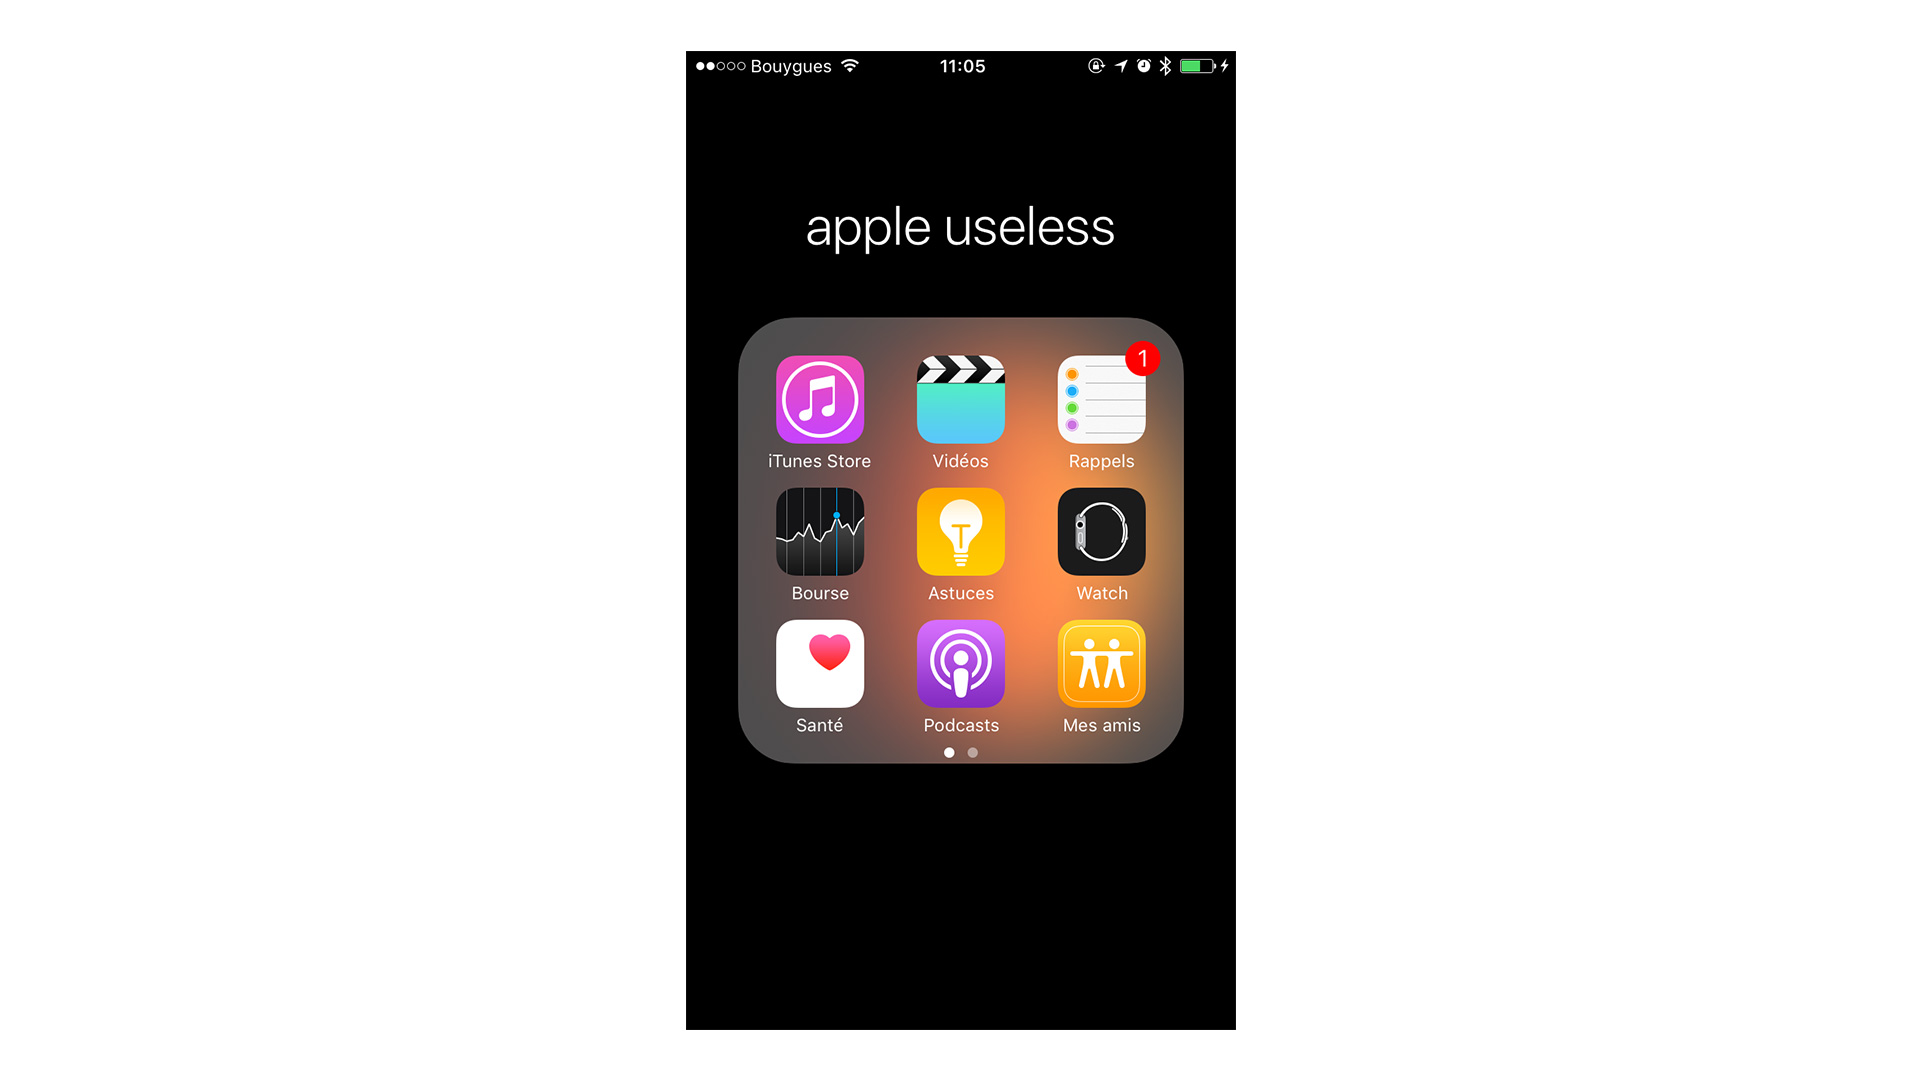 appleuseless